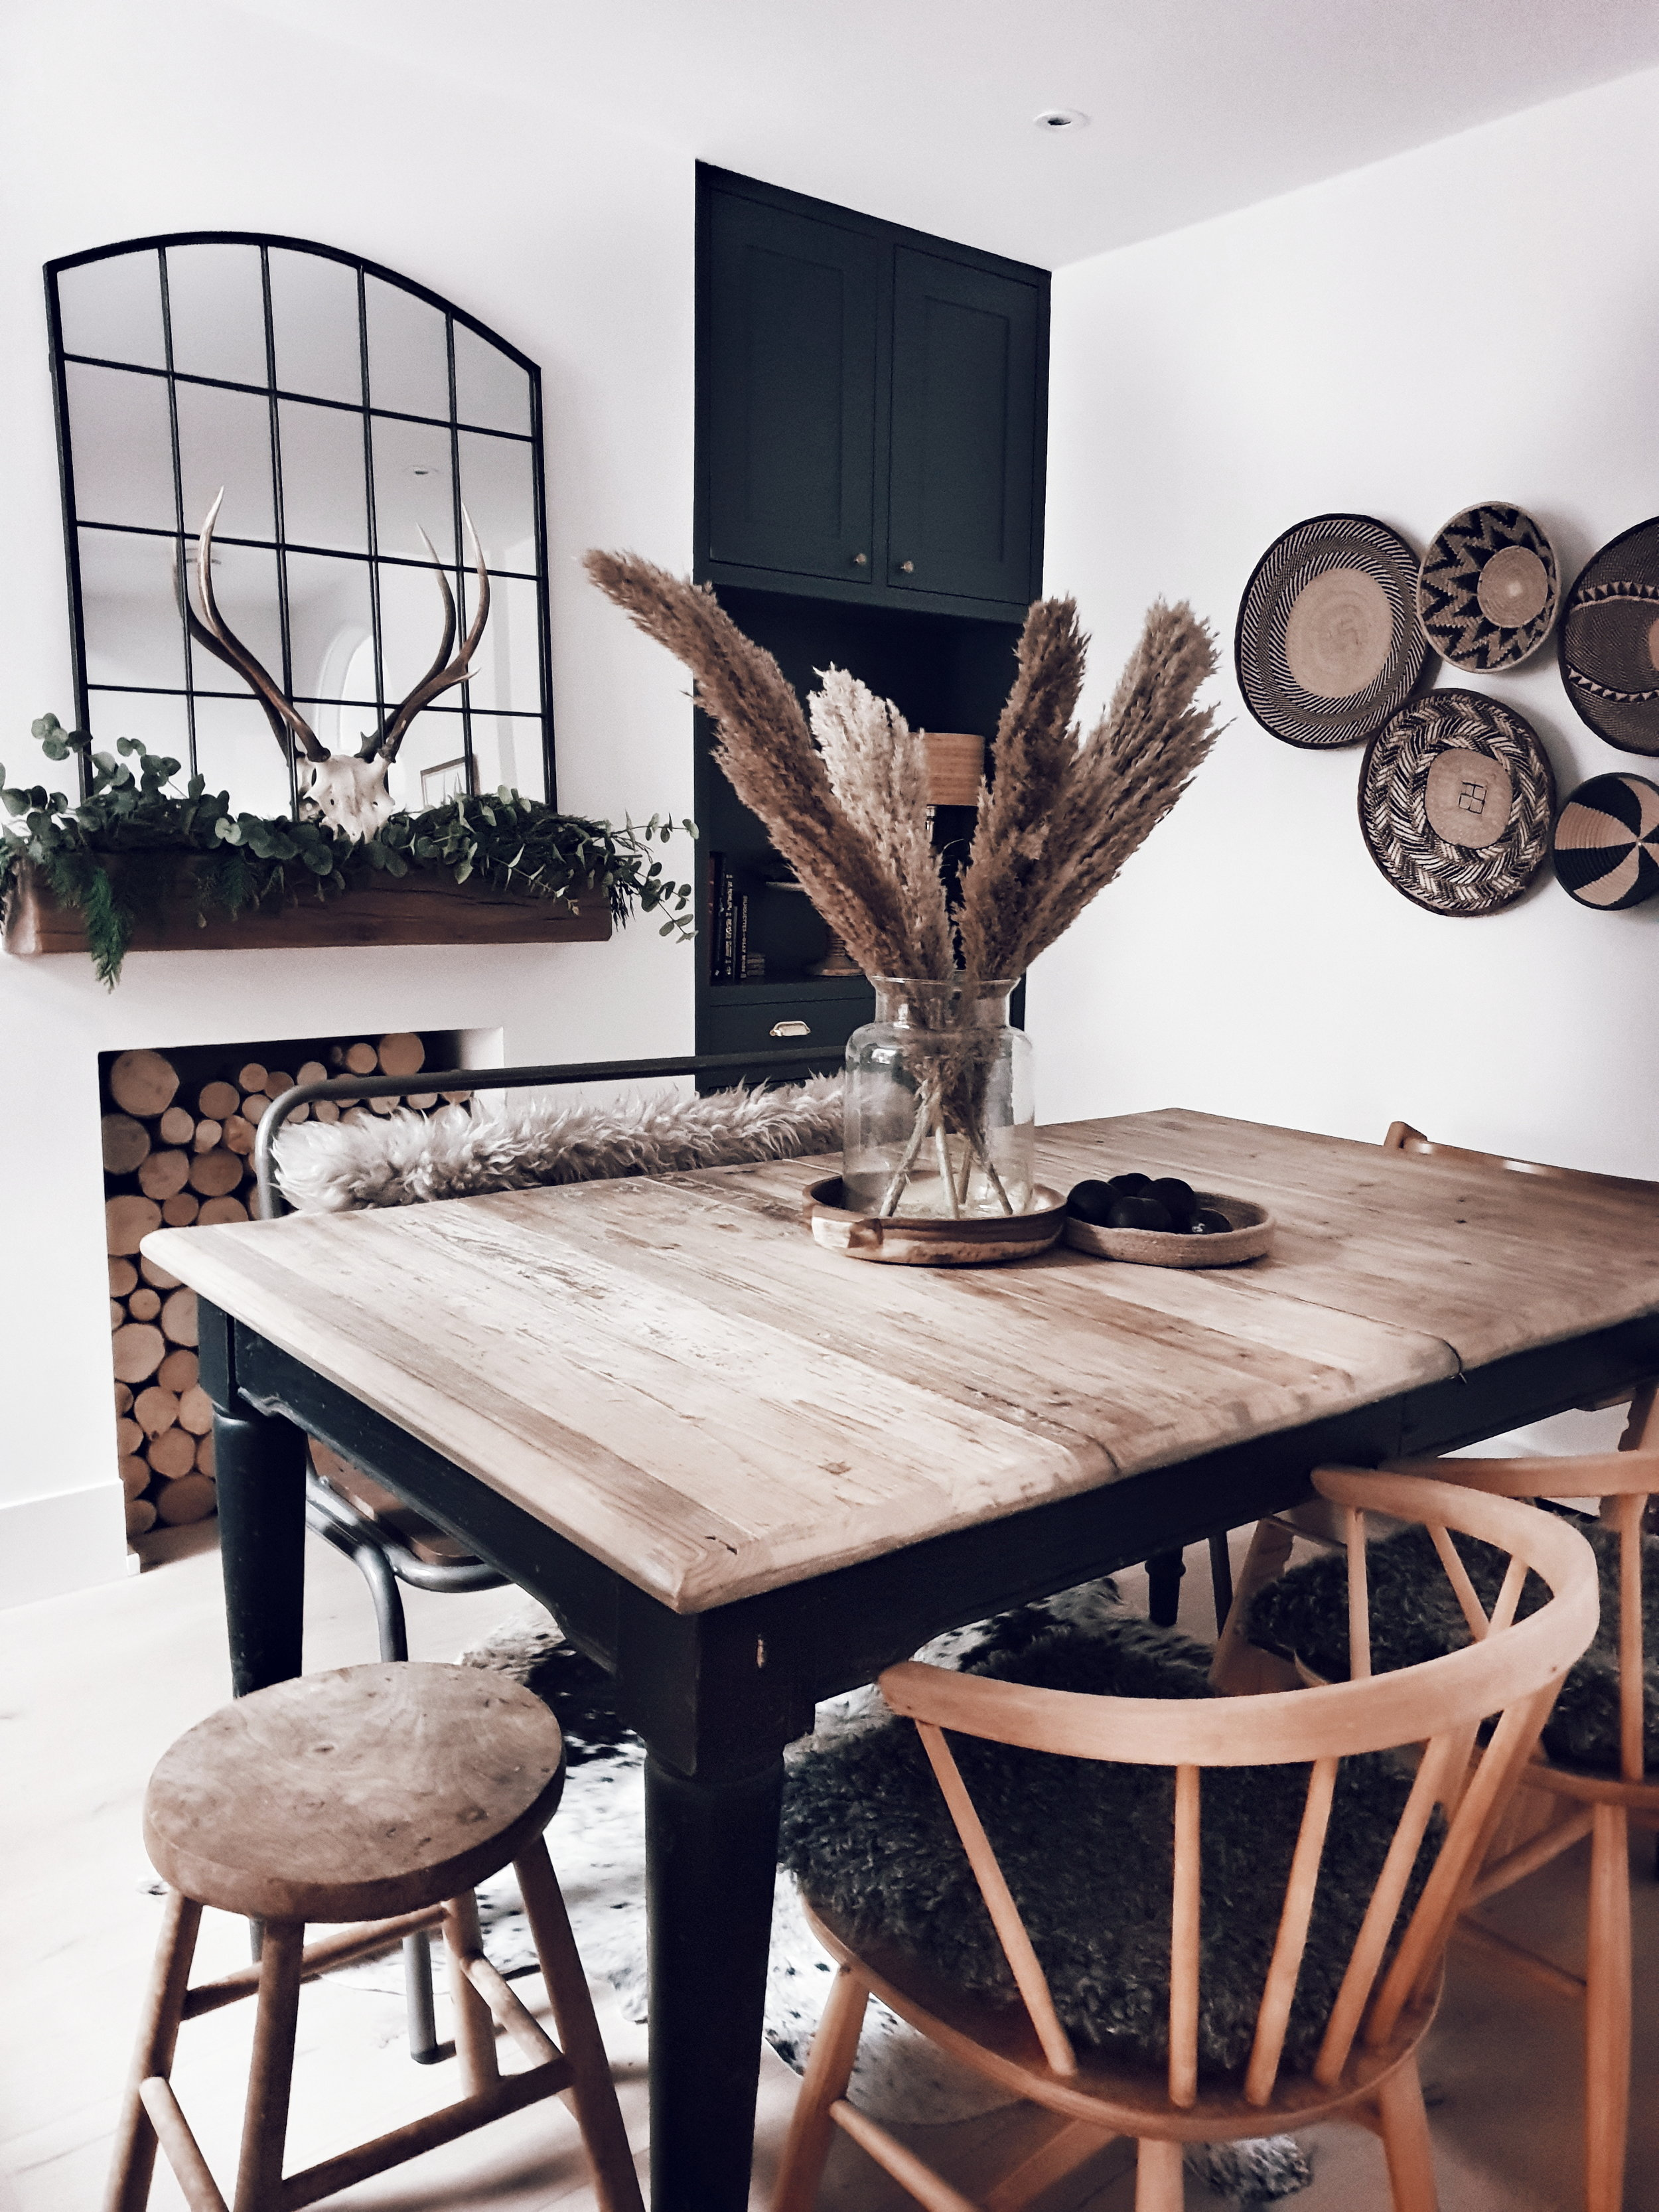 The family dining space with hygge sheepskins on the chairs